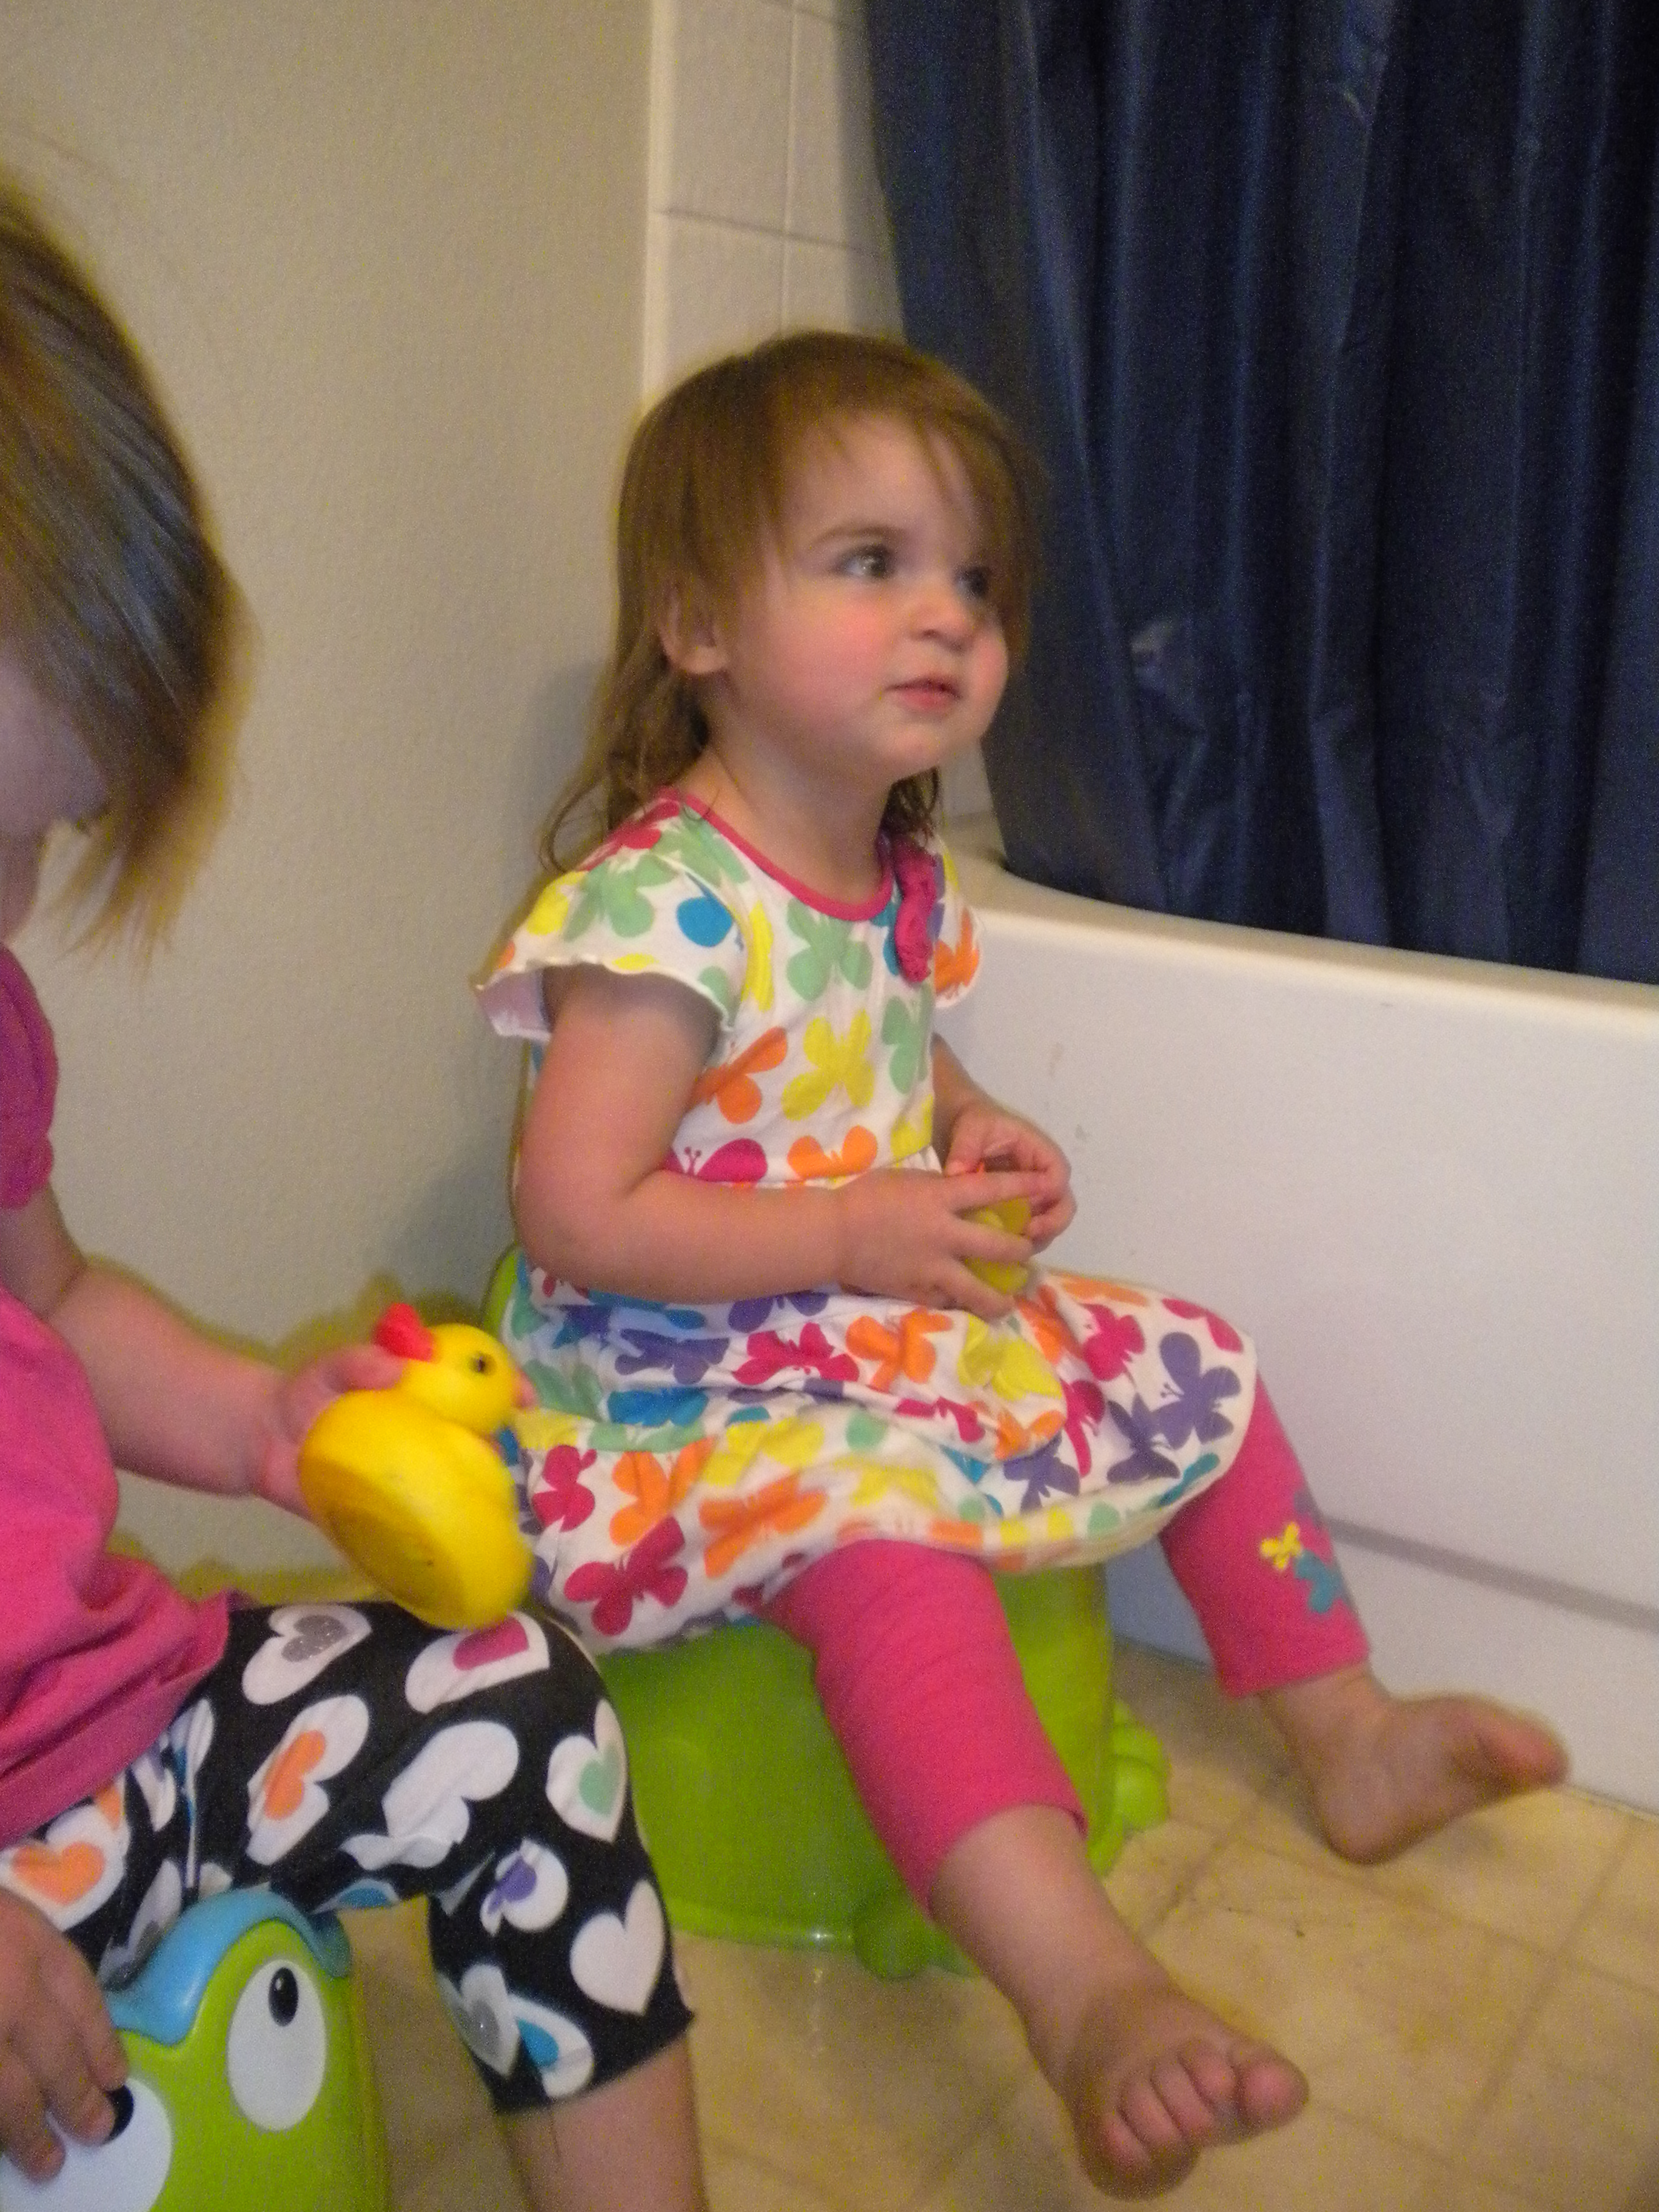 Little girl being potty trained